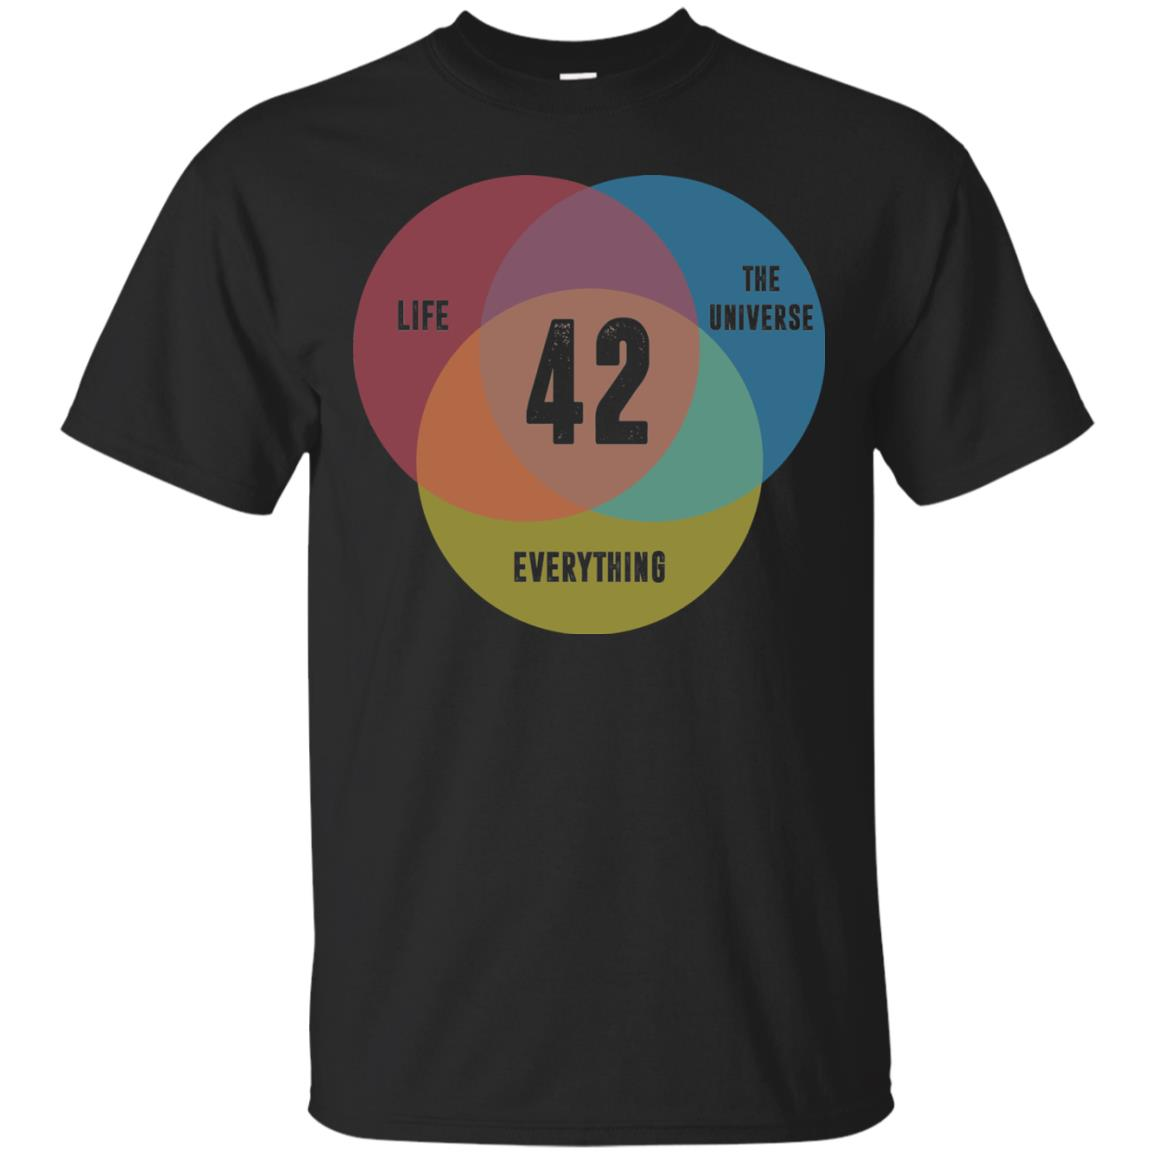 image 469 venn diagram 42 life, the universe & everything t shirt shirt diagram at mifinder.co